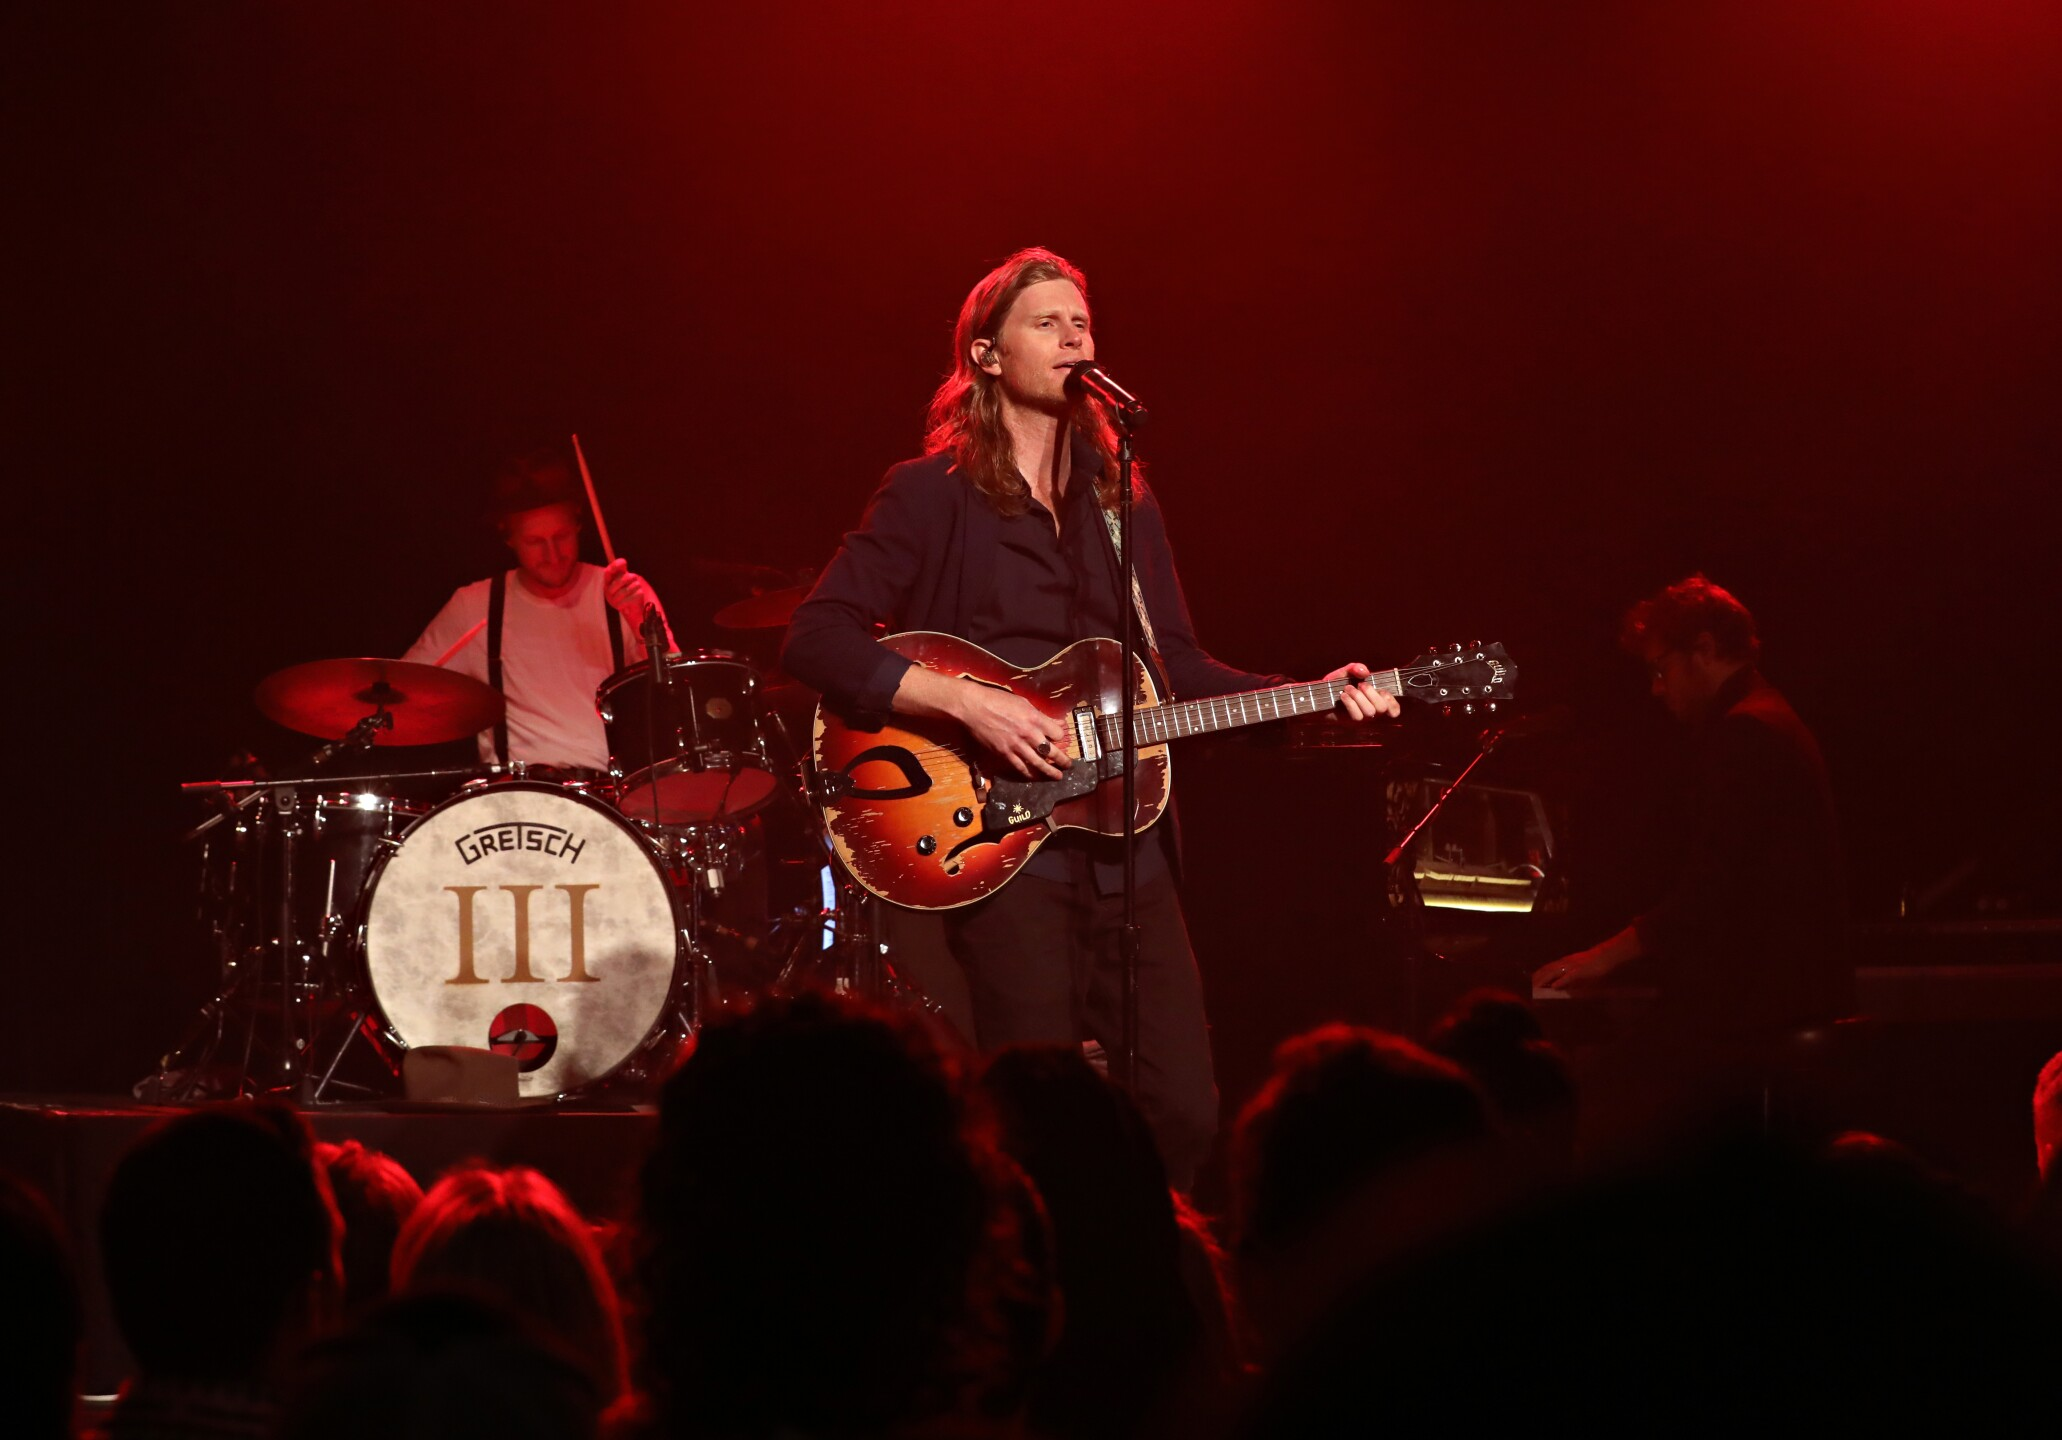 The Lumineers Perform Exclusive Concert For SiriusXM At Music Hall Of Williamsburg In Brooklyn, NY